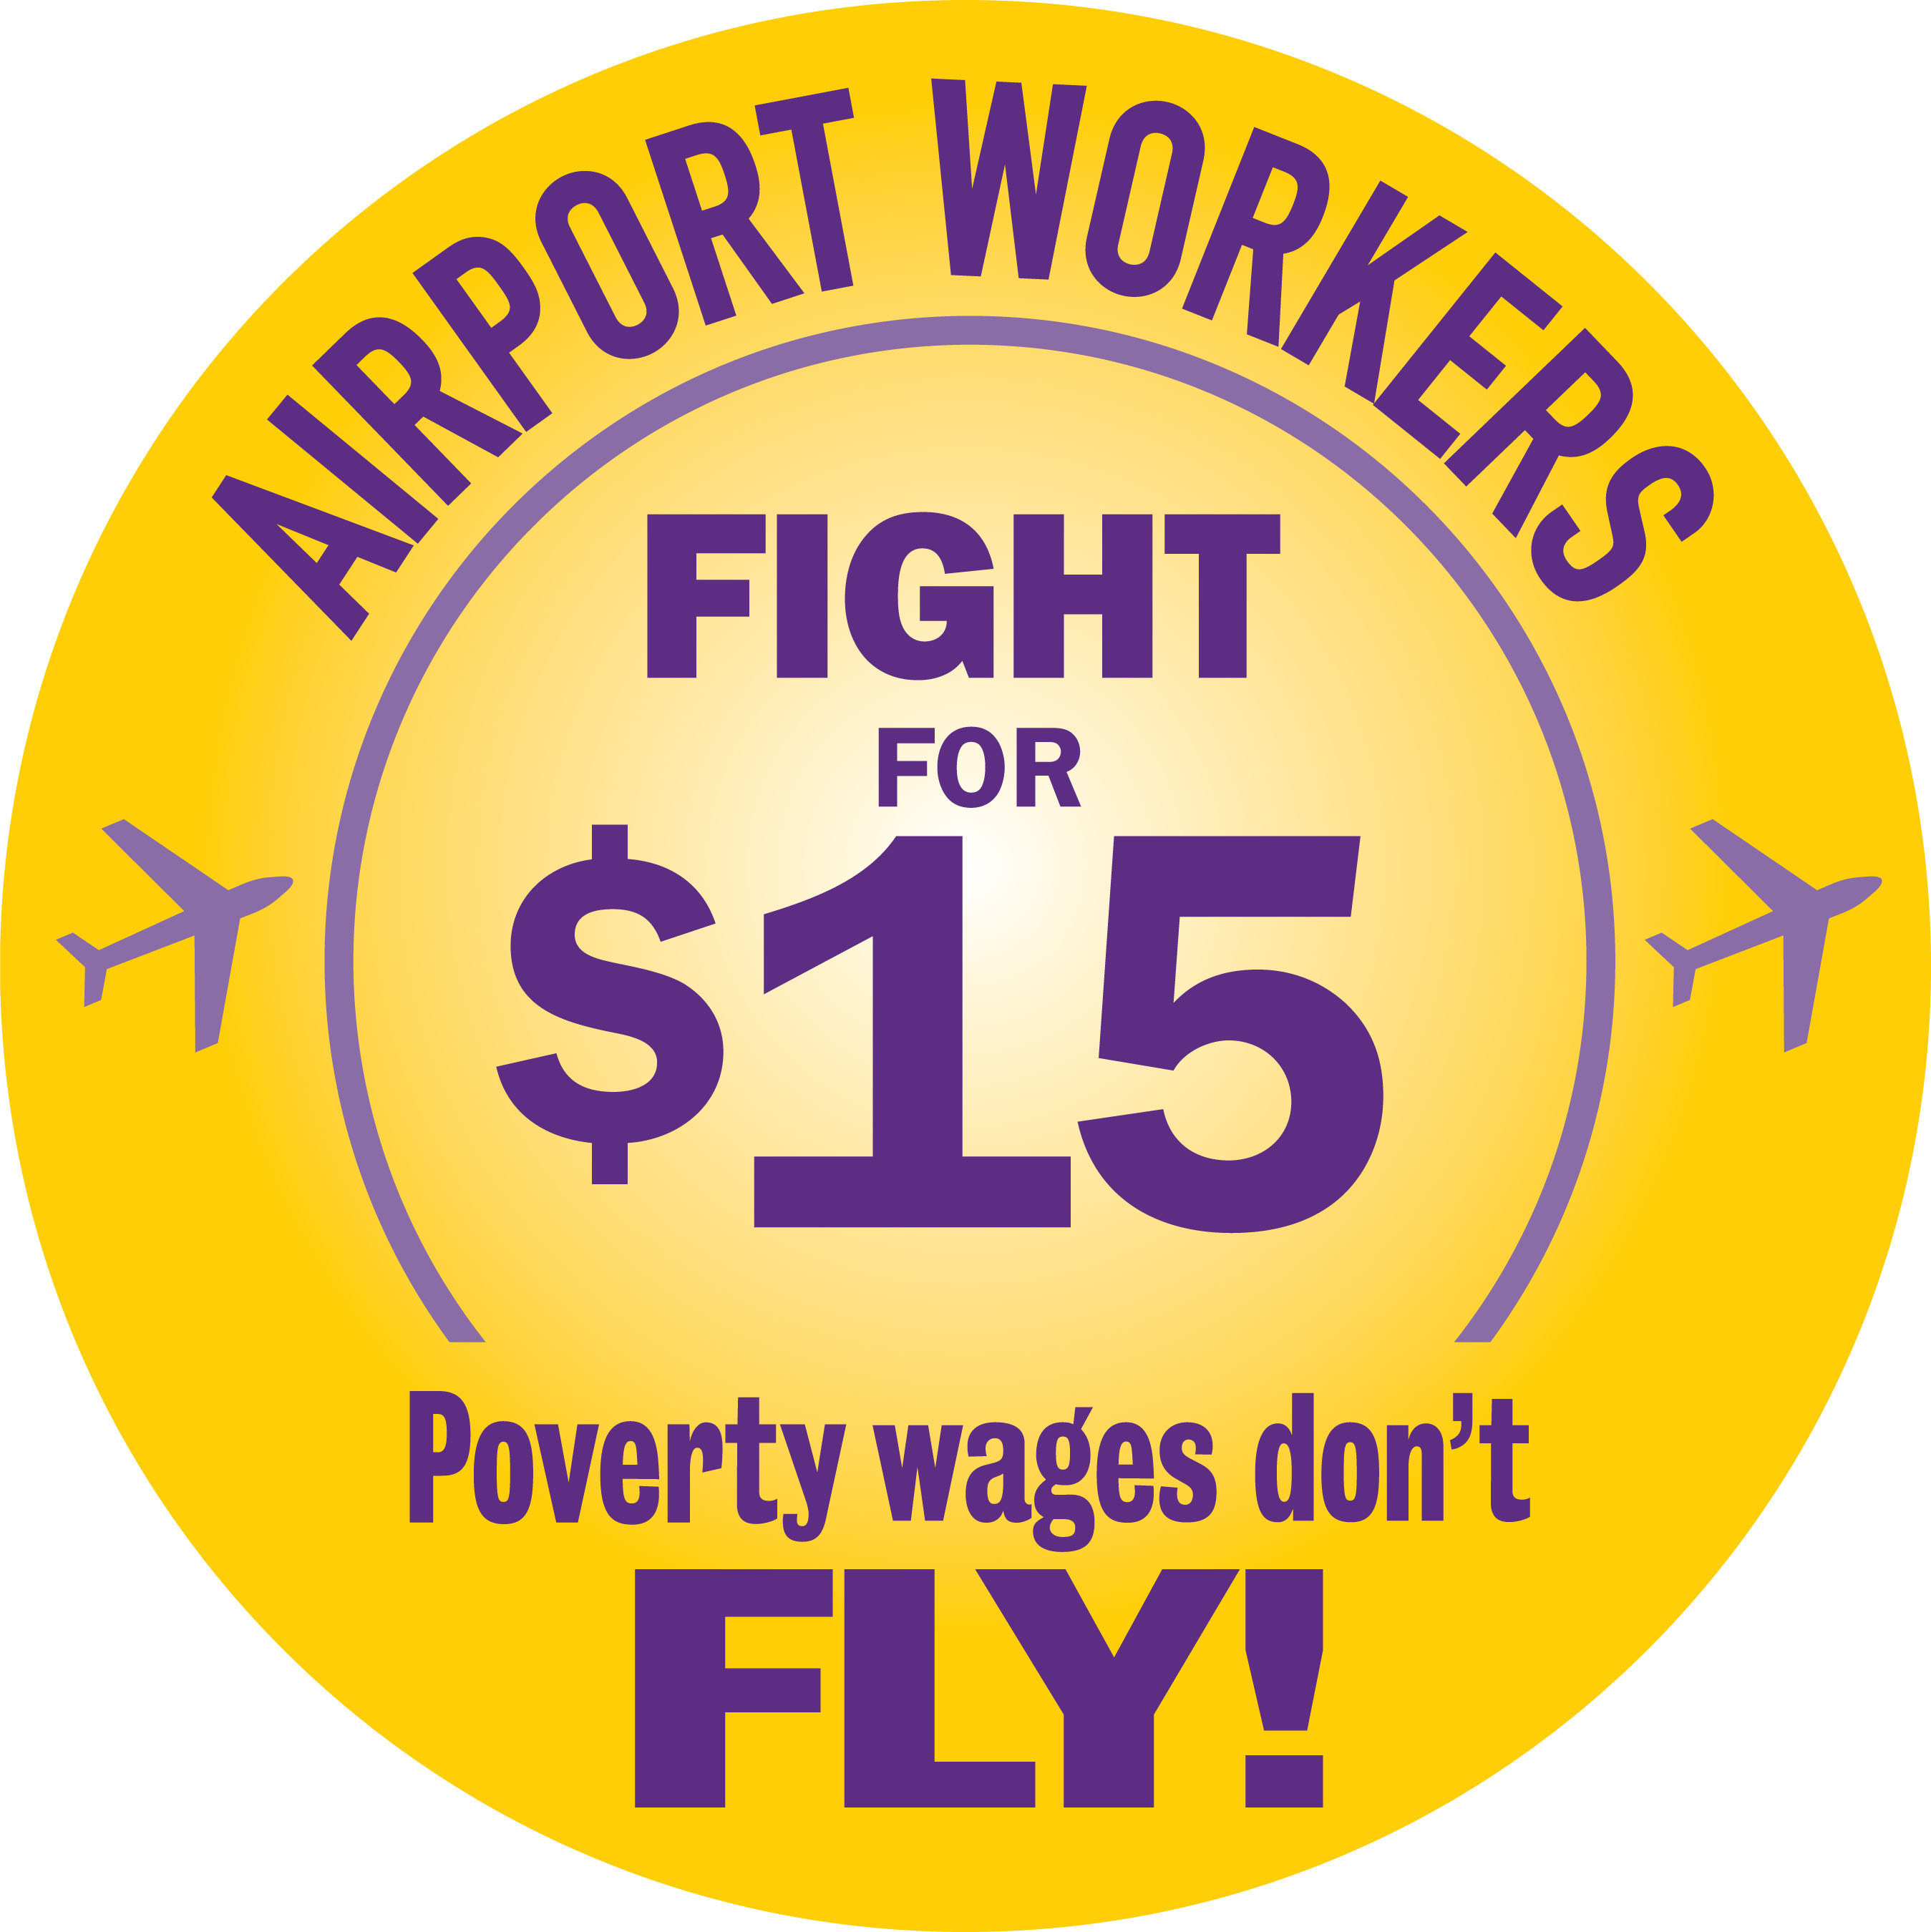 Working people at airports around the United States are standing up with other underpaid workers in the Fight for 15 movement to do whatever it takes to win at least $15 and union rights for every airport worker so they can provide for their families and better care for the hundreds of millions of passengers who rely on them to travel safely. Workers are concerned that low wages, high turnover, inadequate training and safety standards at our nation's airports not only put workers in danger but also hurt passengers by impacting security and quality of service.